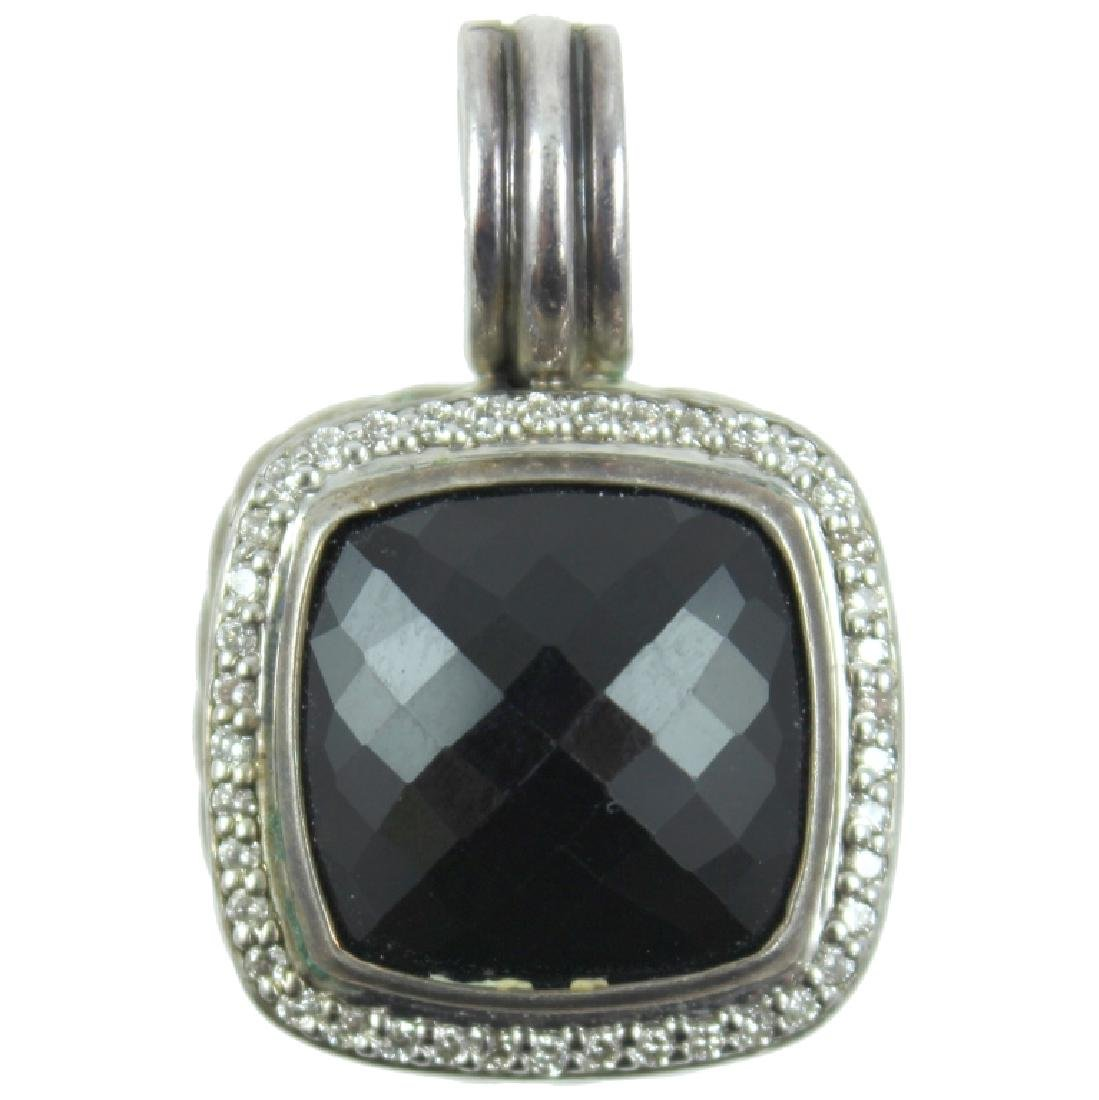 David Yurman Onyx Pendant.